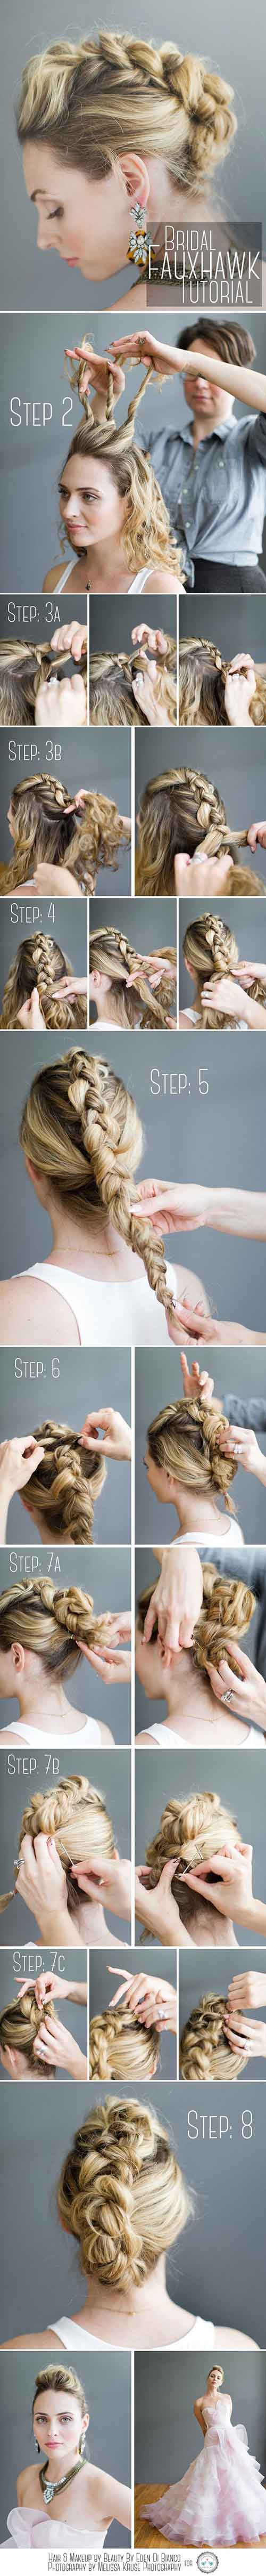 Updo Hairstyles - The Faux Dutch Braid Mohawk